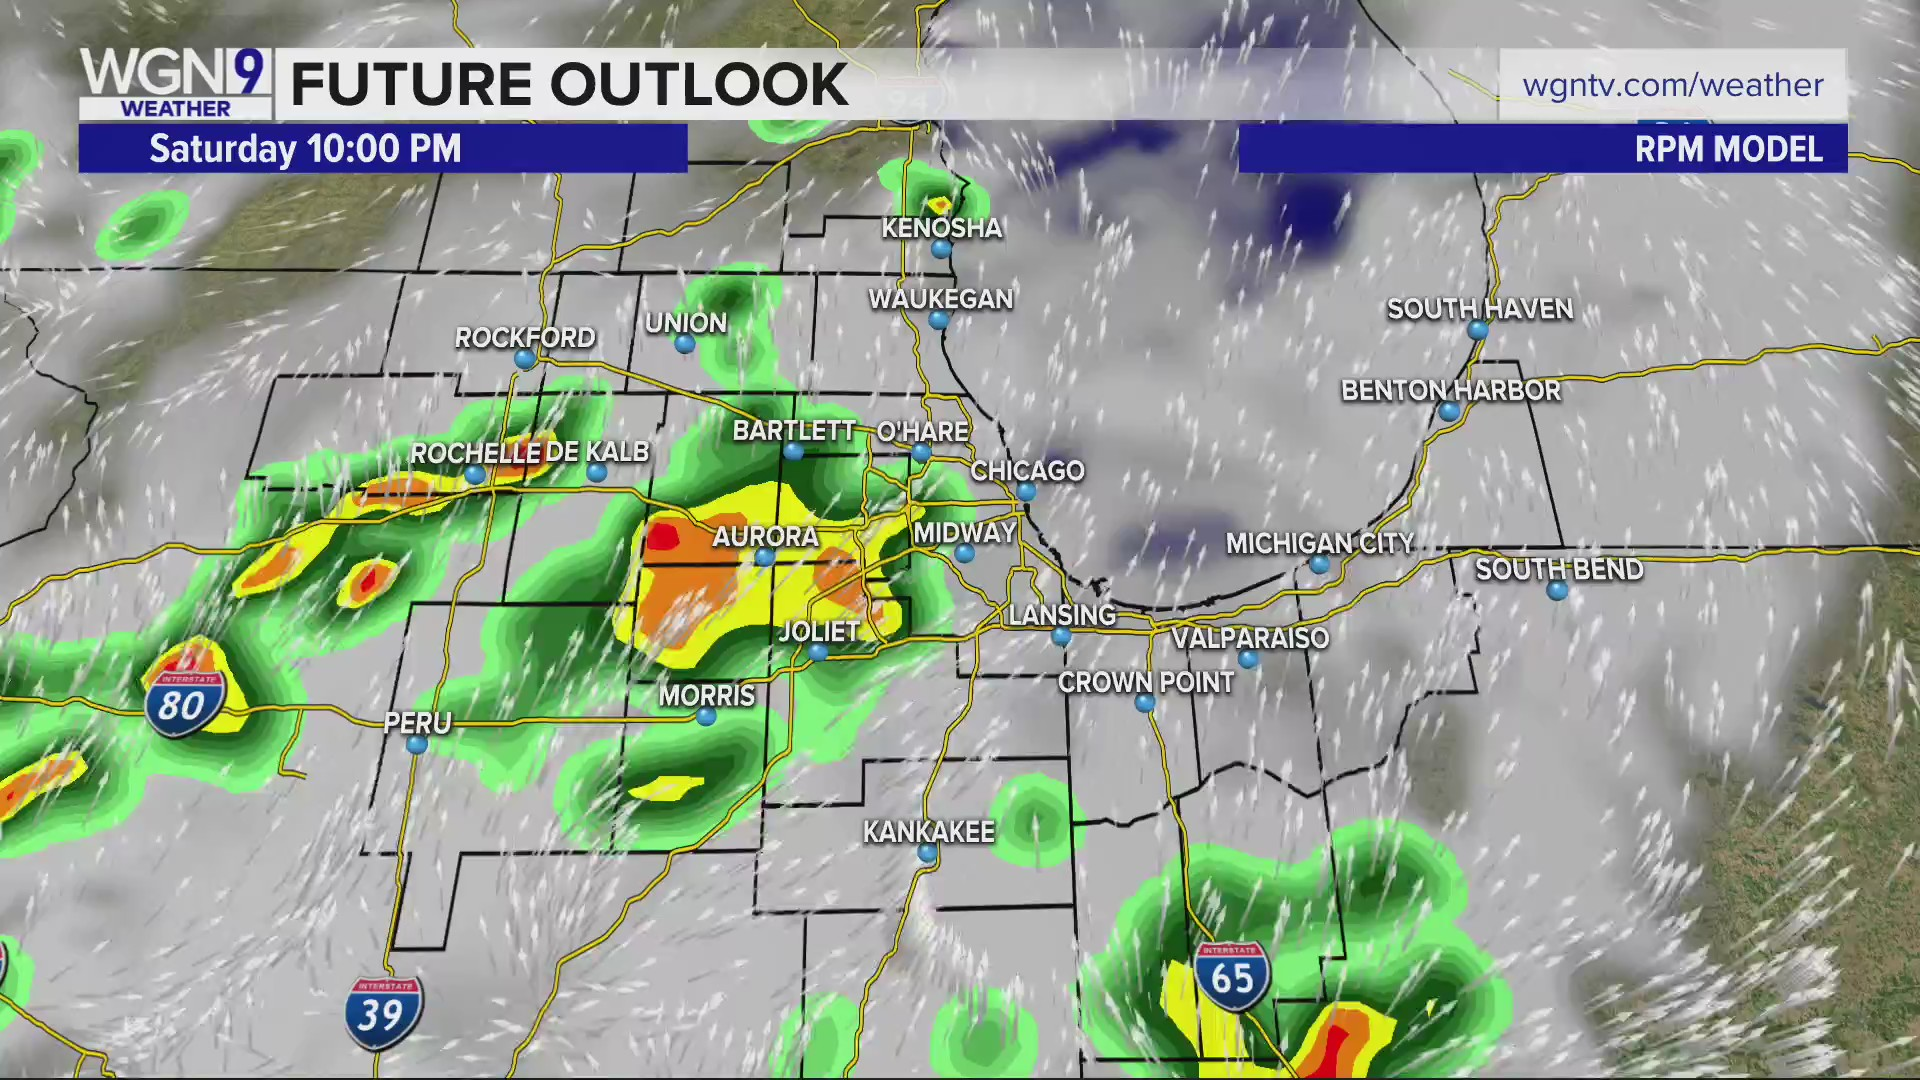 Severe weather west of Chicago Saturday | WGN TV